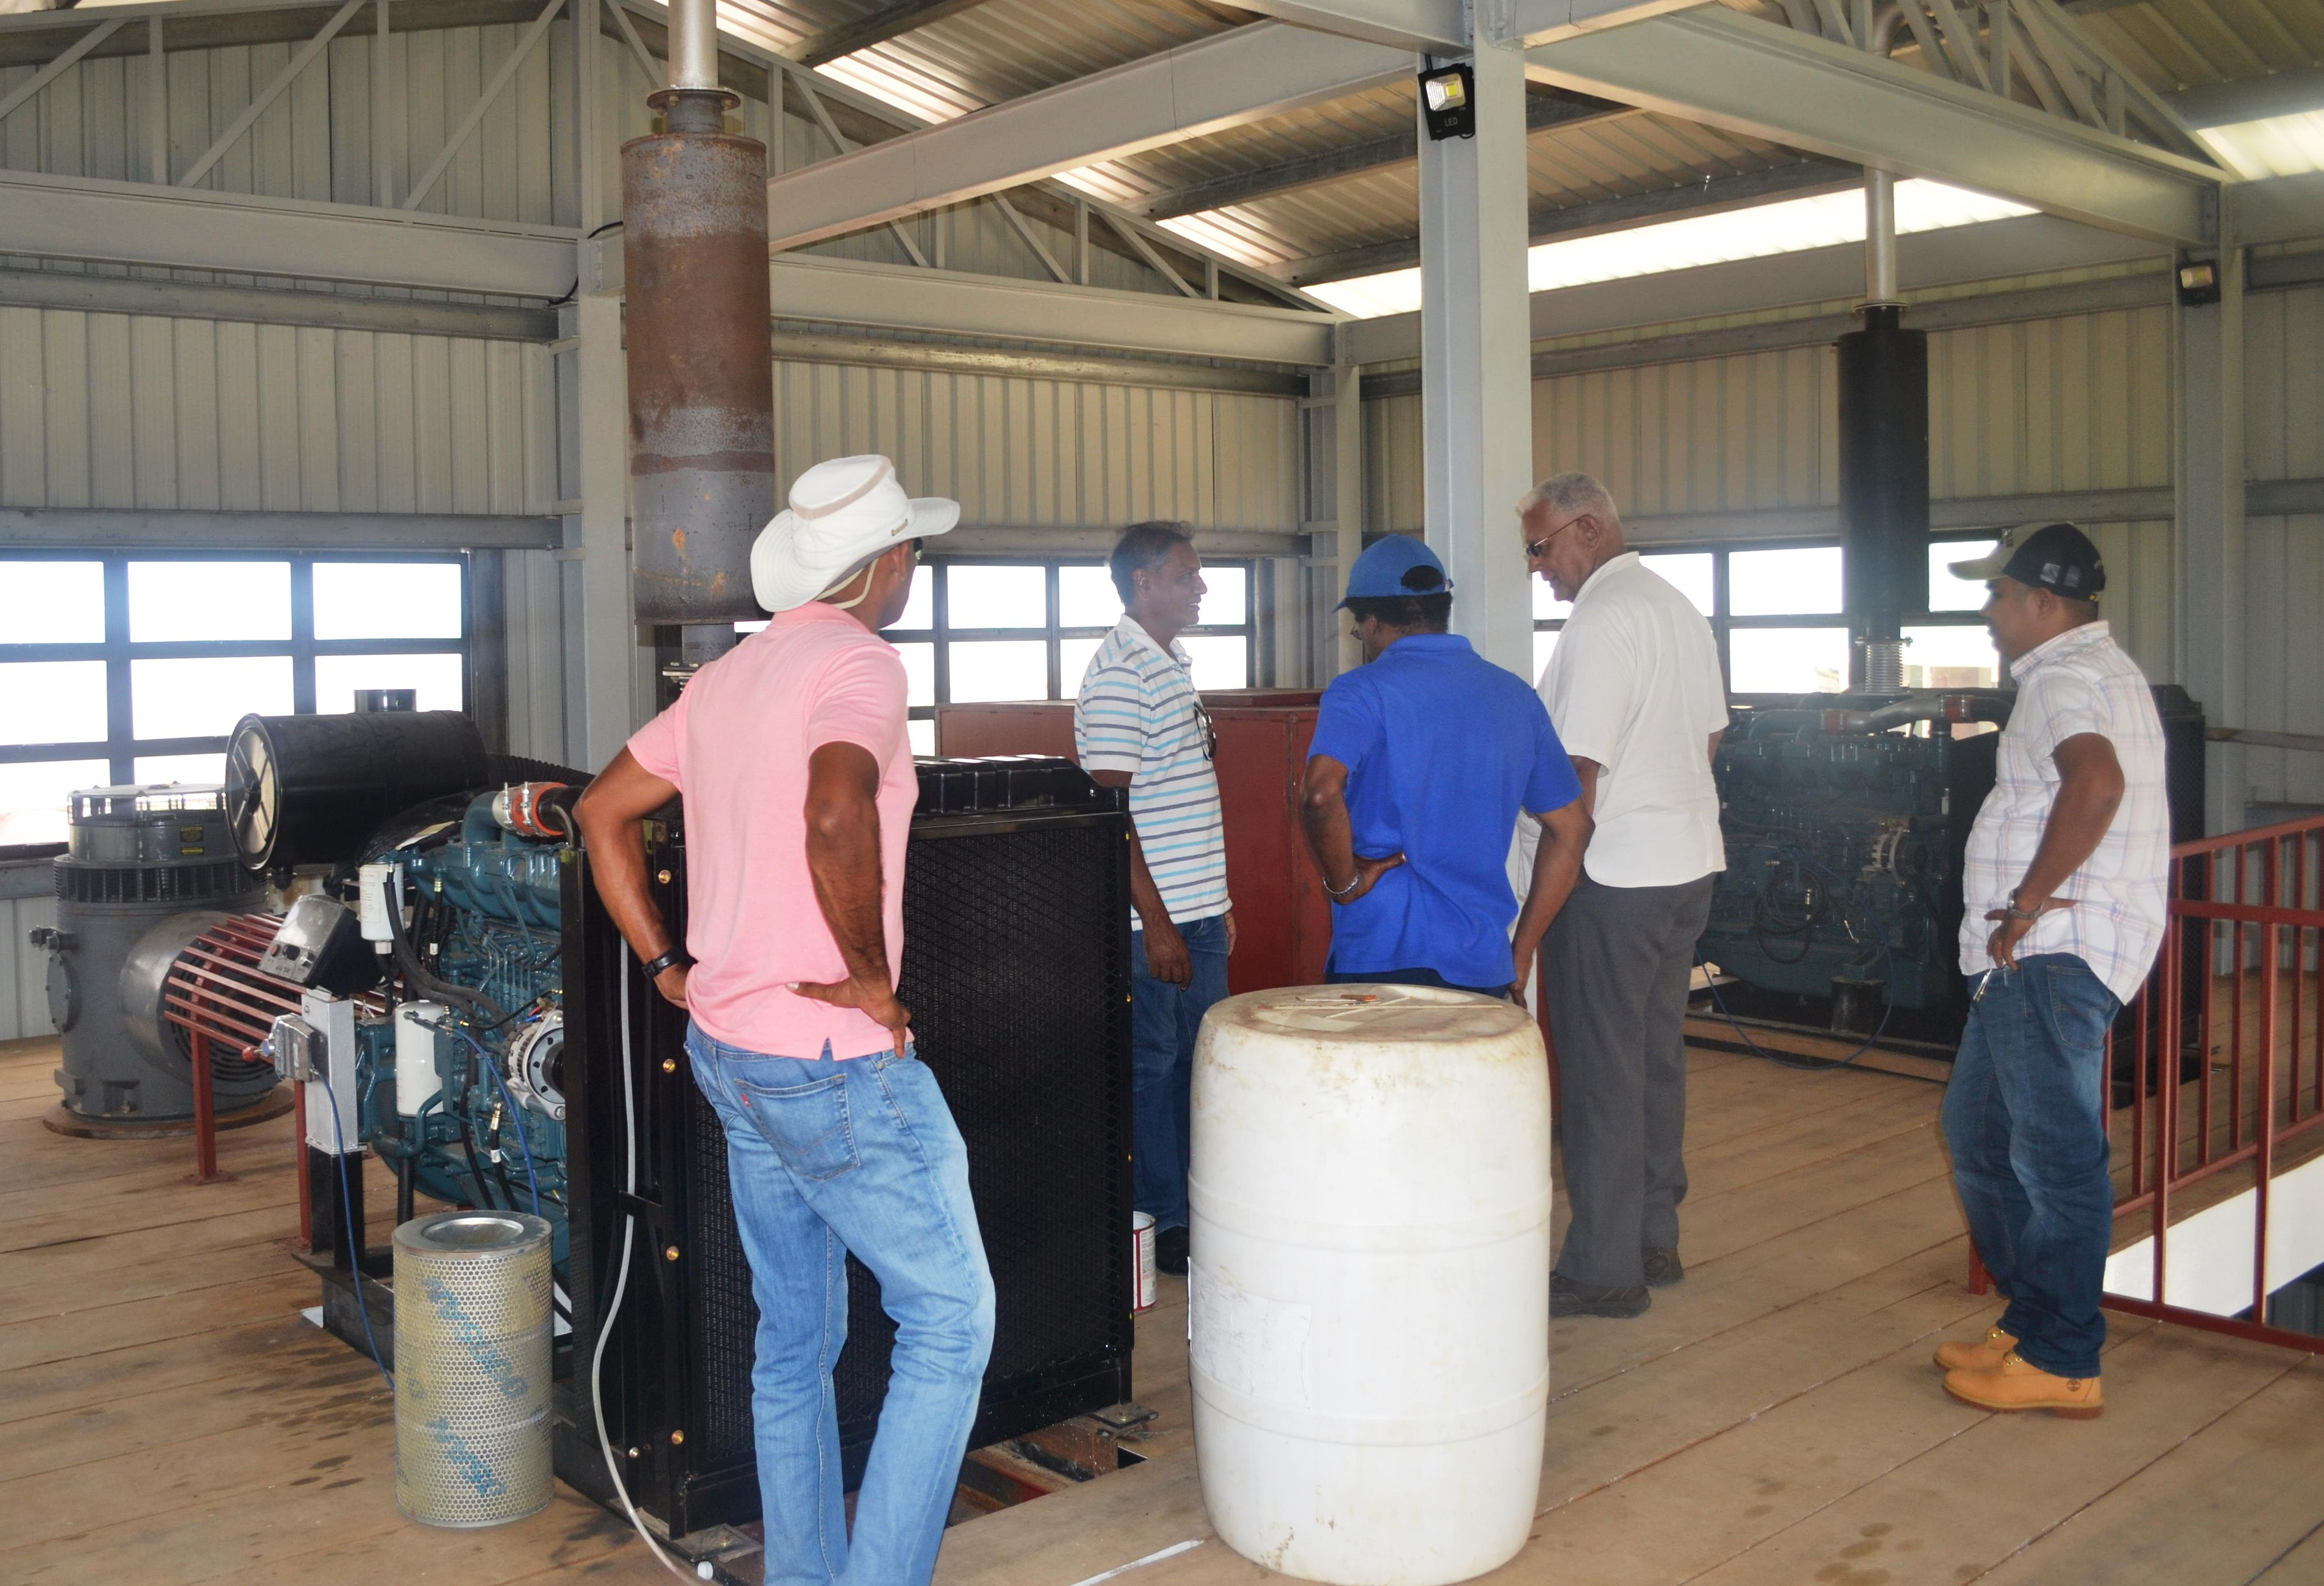 Minister Holder, NDIA CEO, Fredrick Flatts and other officials inspecting the pumps installed at the Lusignan Pump Station